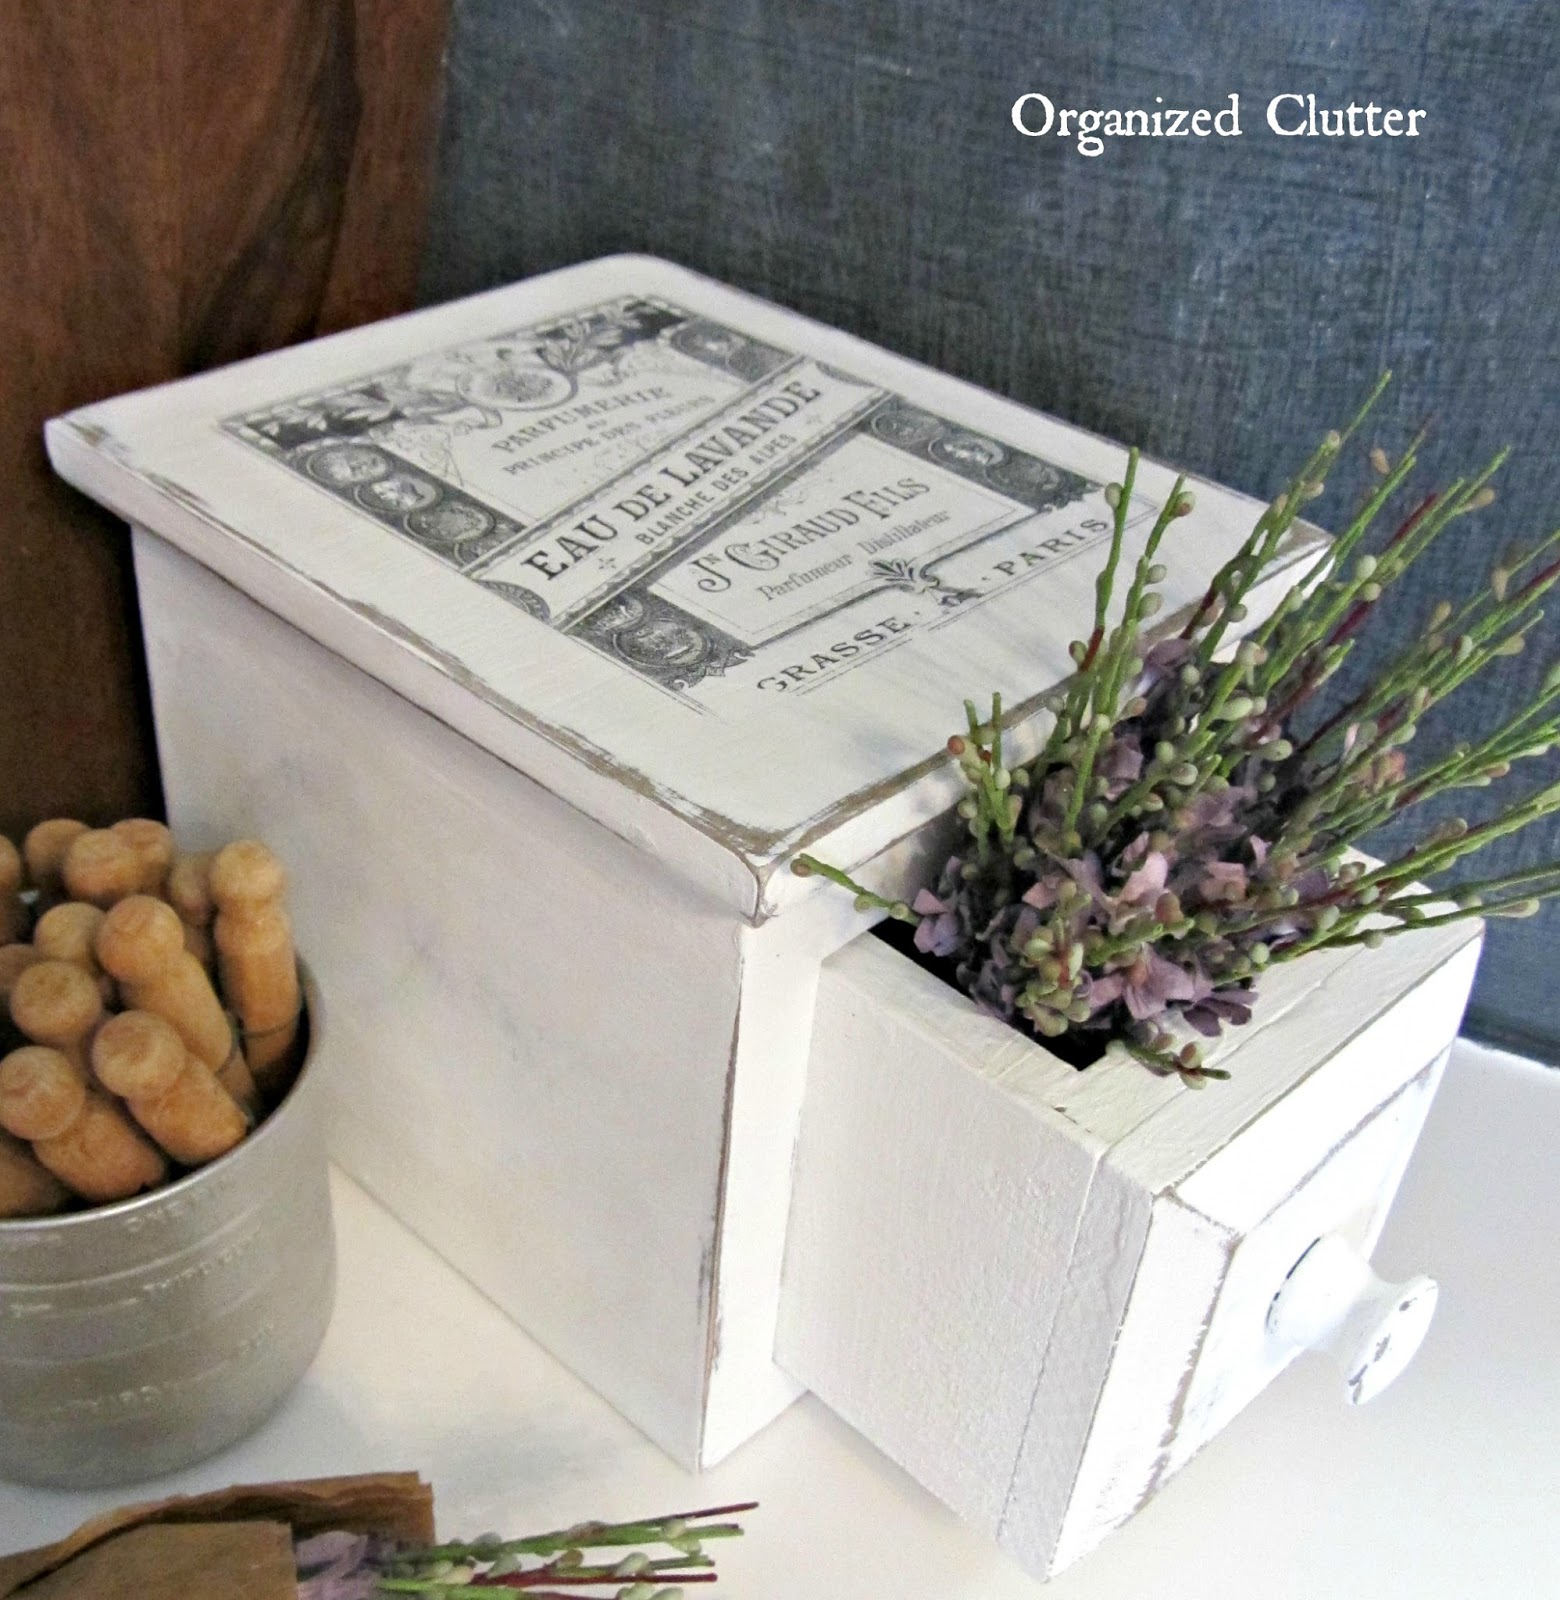 Upcycled Garage Sale Potpourri Drawer www.organizedclutterqueen.blogspot.com